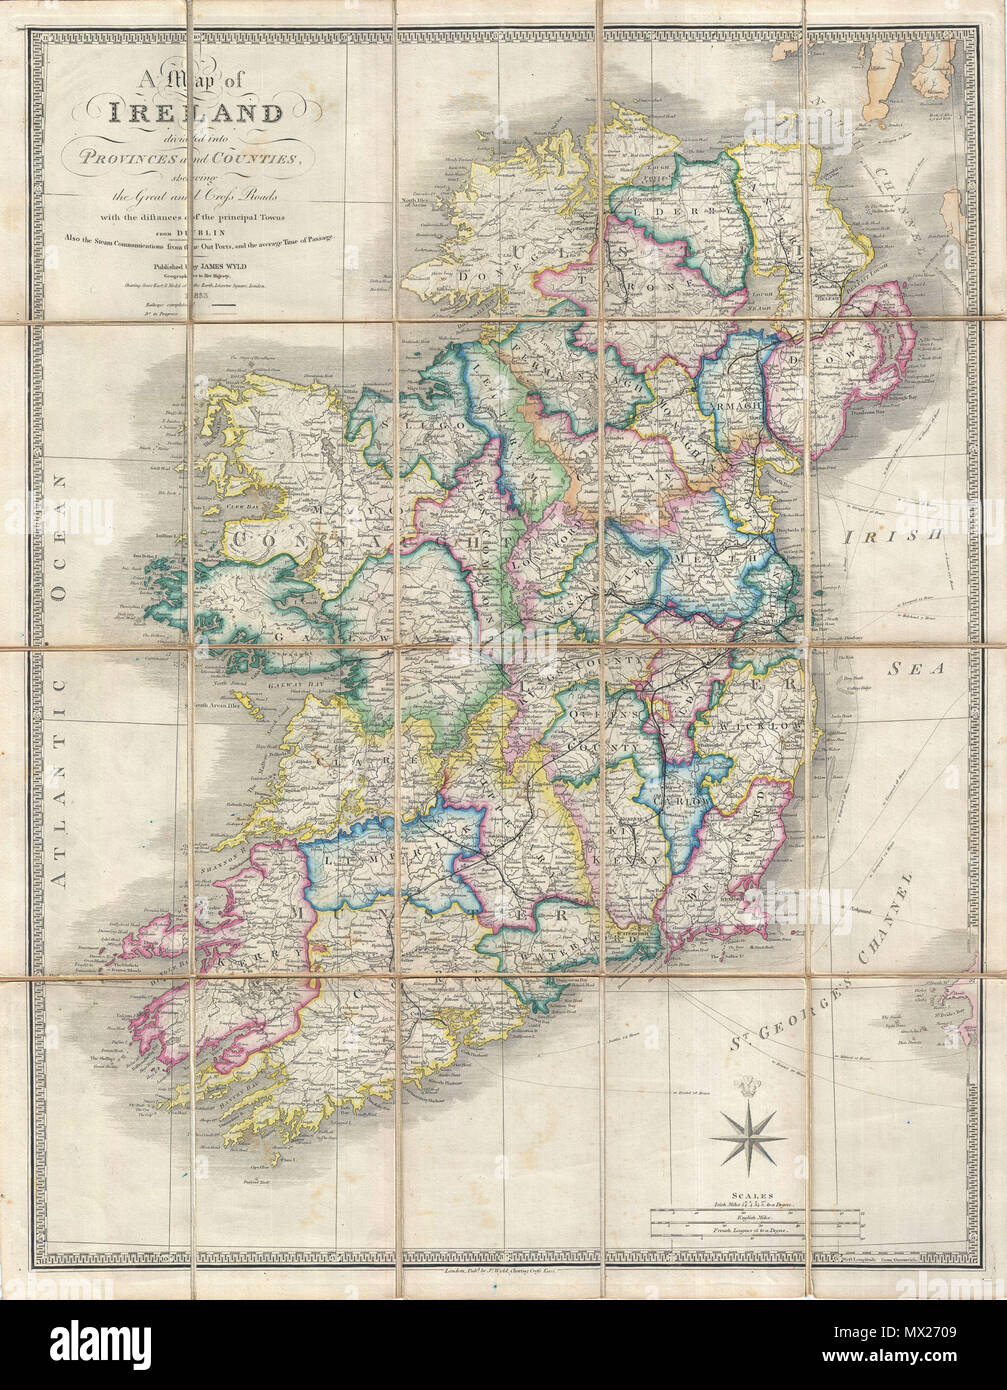 Map Of England And Ireland With Towns.A Map Of Ireland Divided Into Provinces And Counties Shewing The